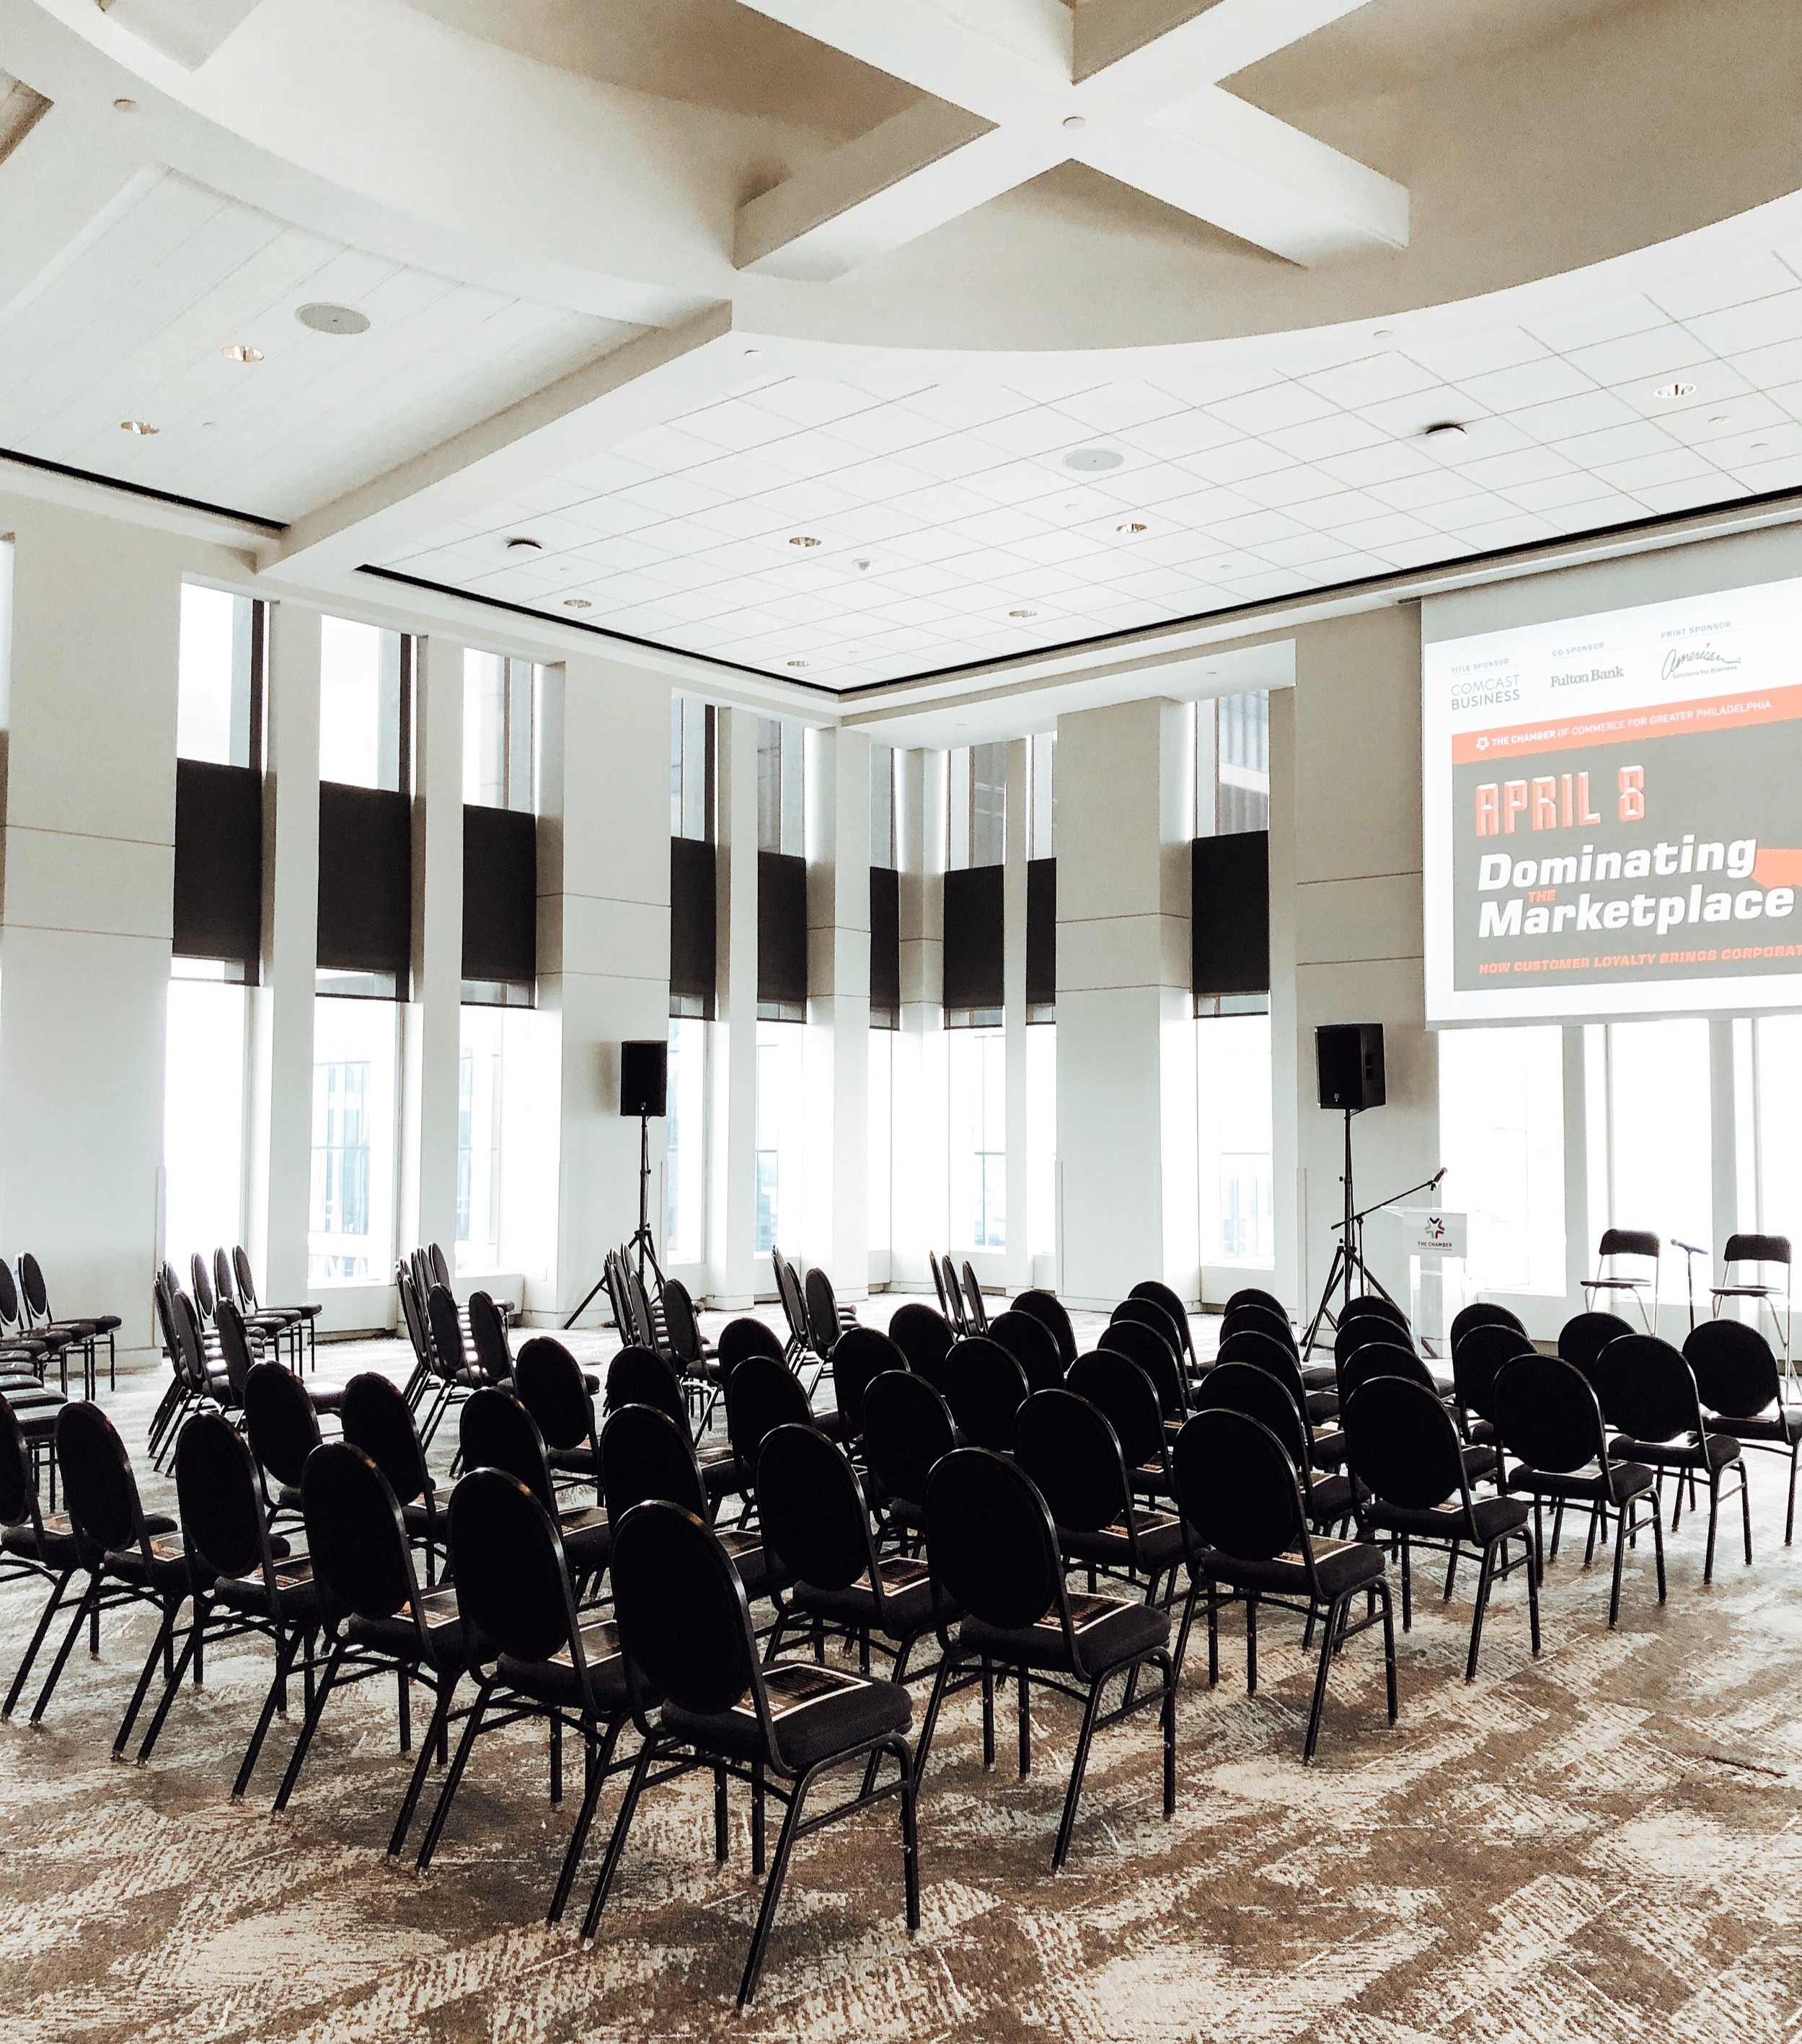 Views & Flexibility - VUE on 50's goal is to stretch the limitations on conference and event space. With panoramic views as grand as ours, and the flexibility within our walls, we strive to be a competitive, and also quite unique solution to the standards of banquet event space.